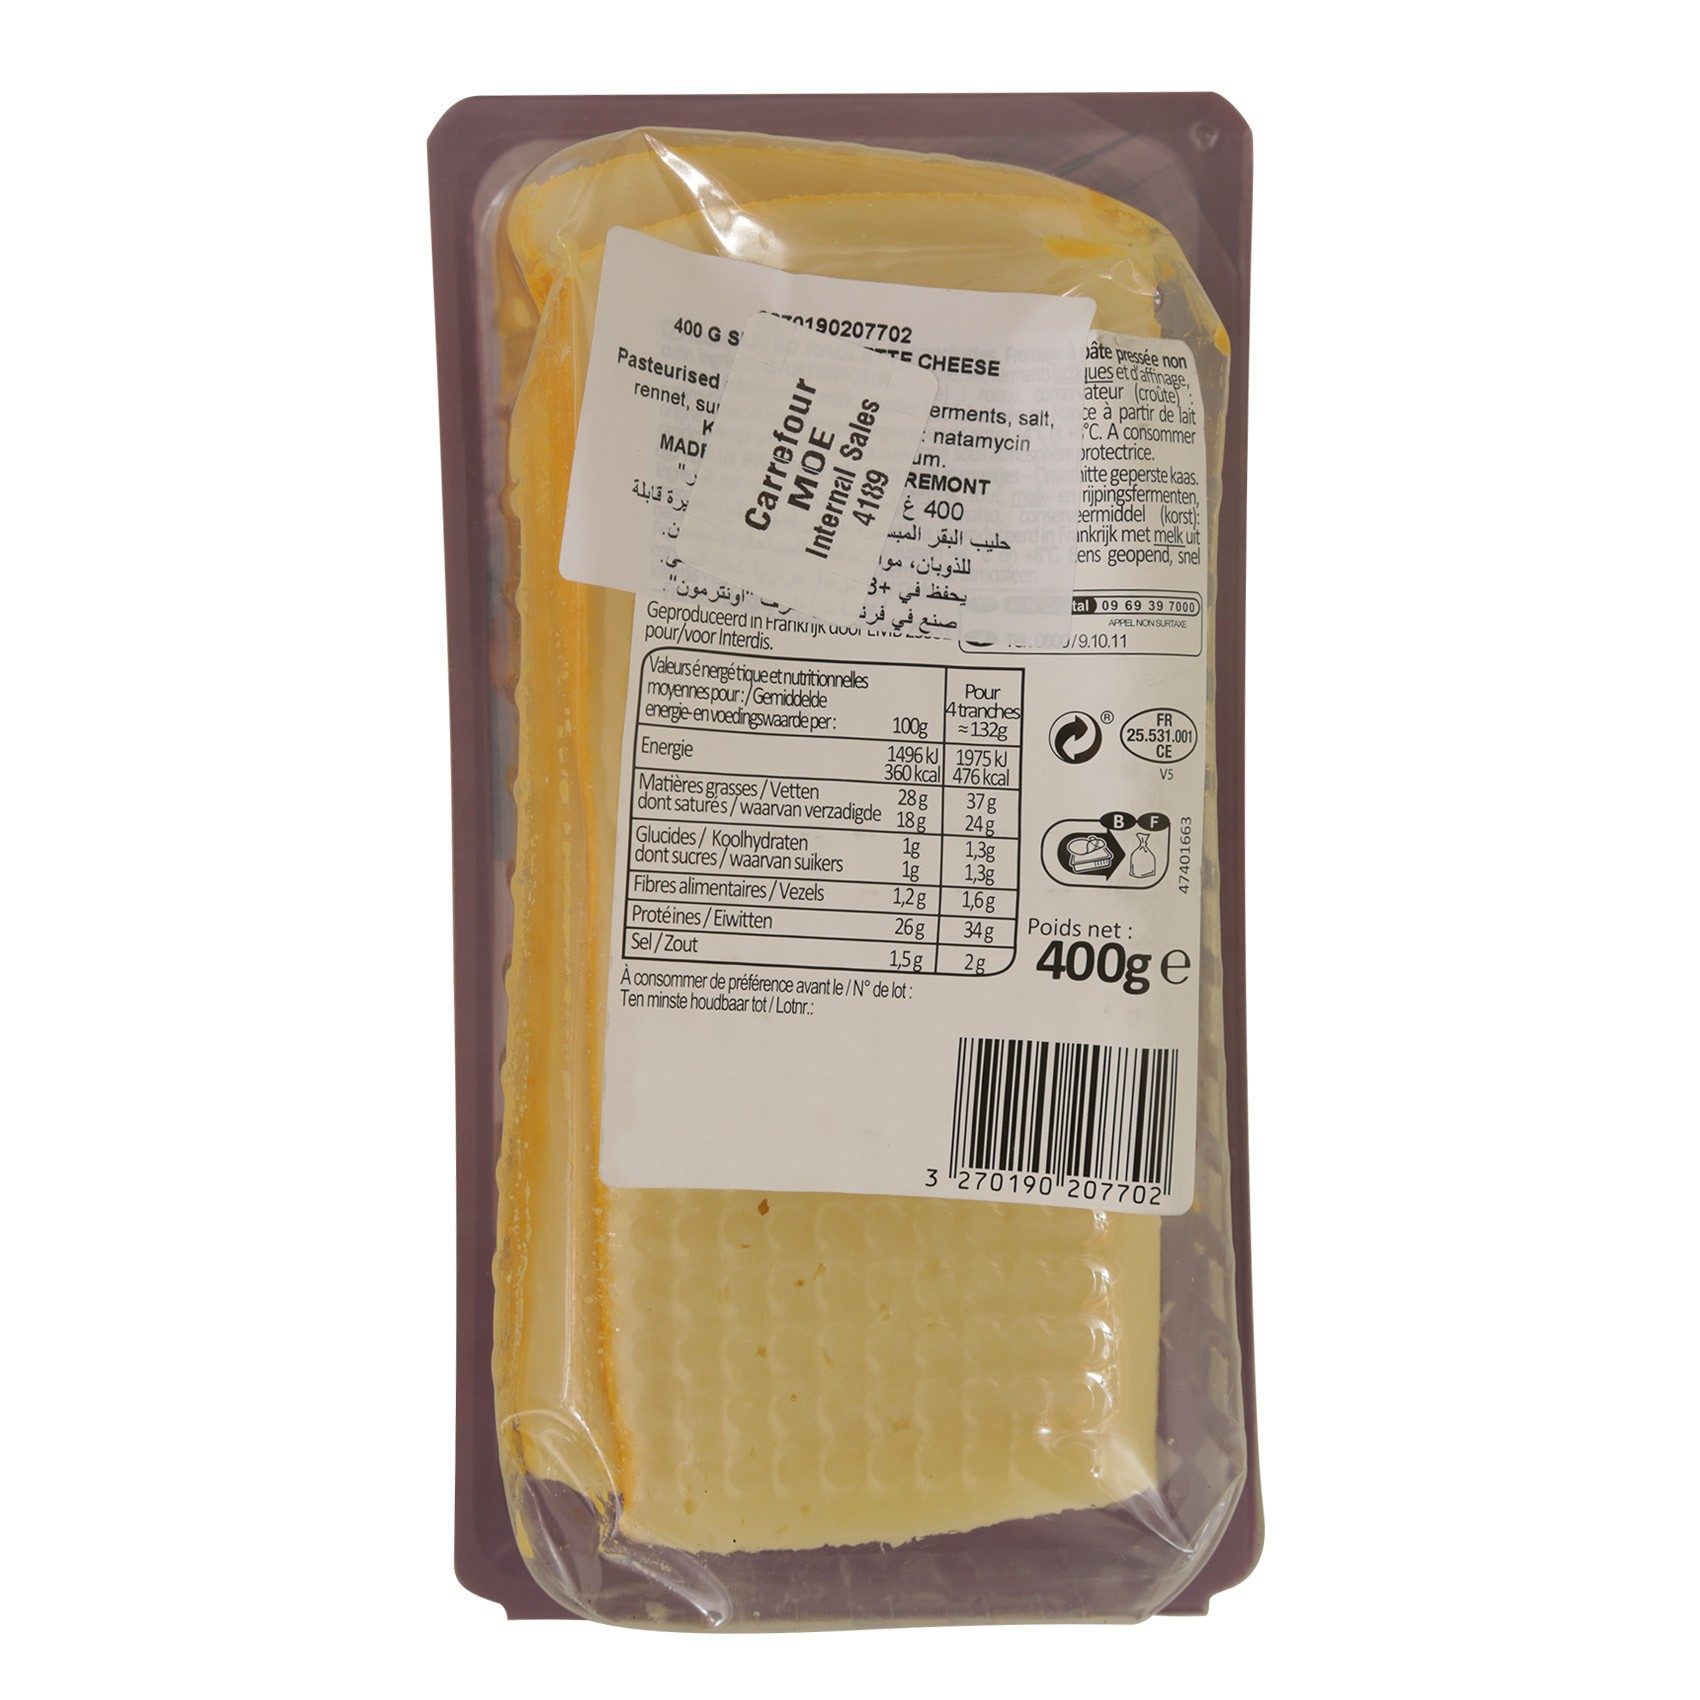 CRF SLICED RACLETTE CHEESE 400G